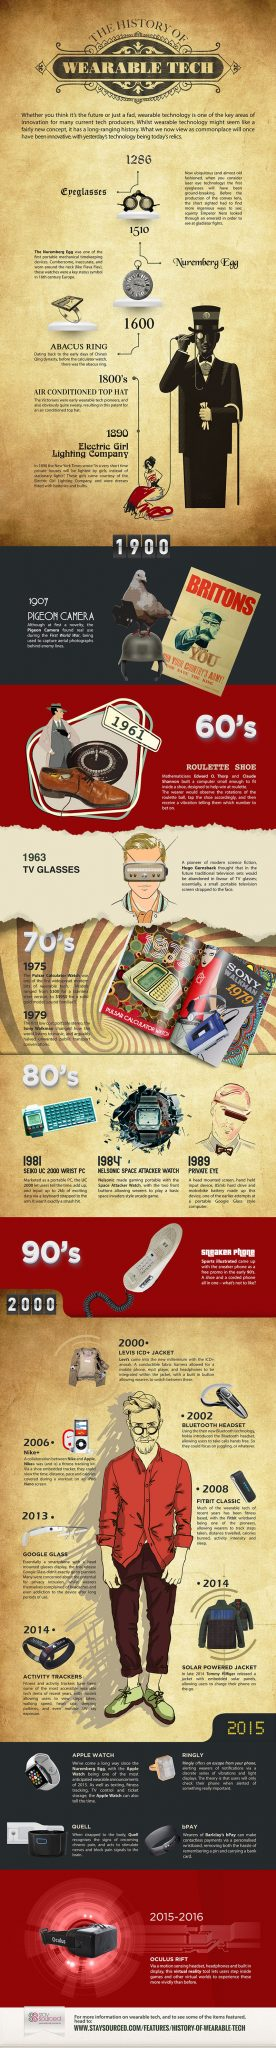 The History of Wearable Technology - Infographic